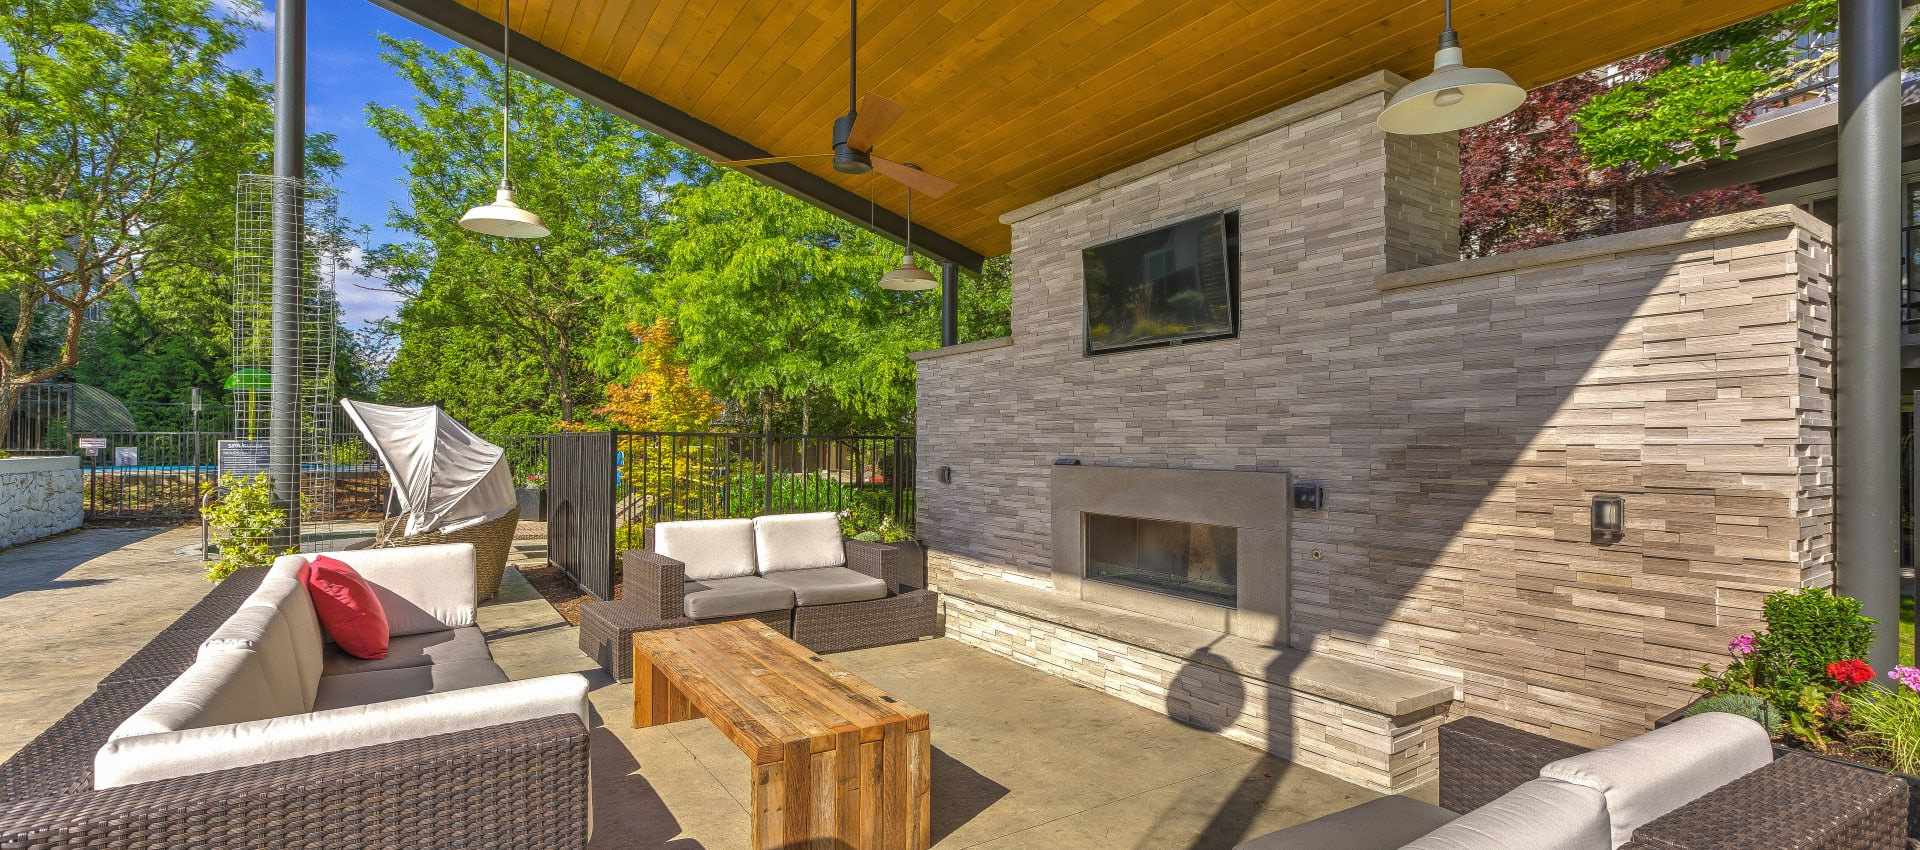 Outdoor Lounge area at Centro Apartment Homes in Hillsboro, Oregon